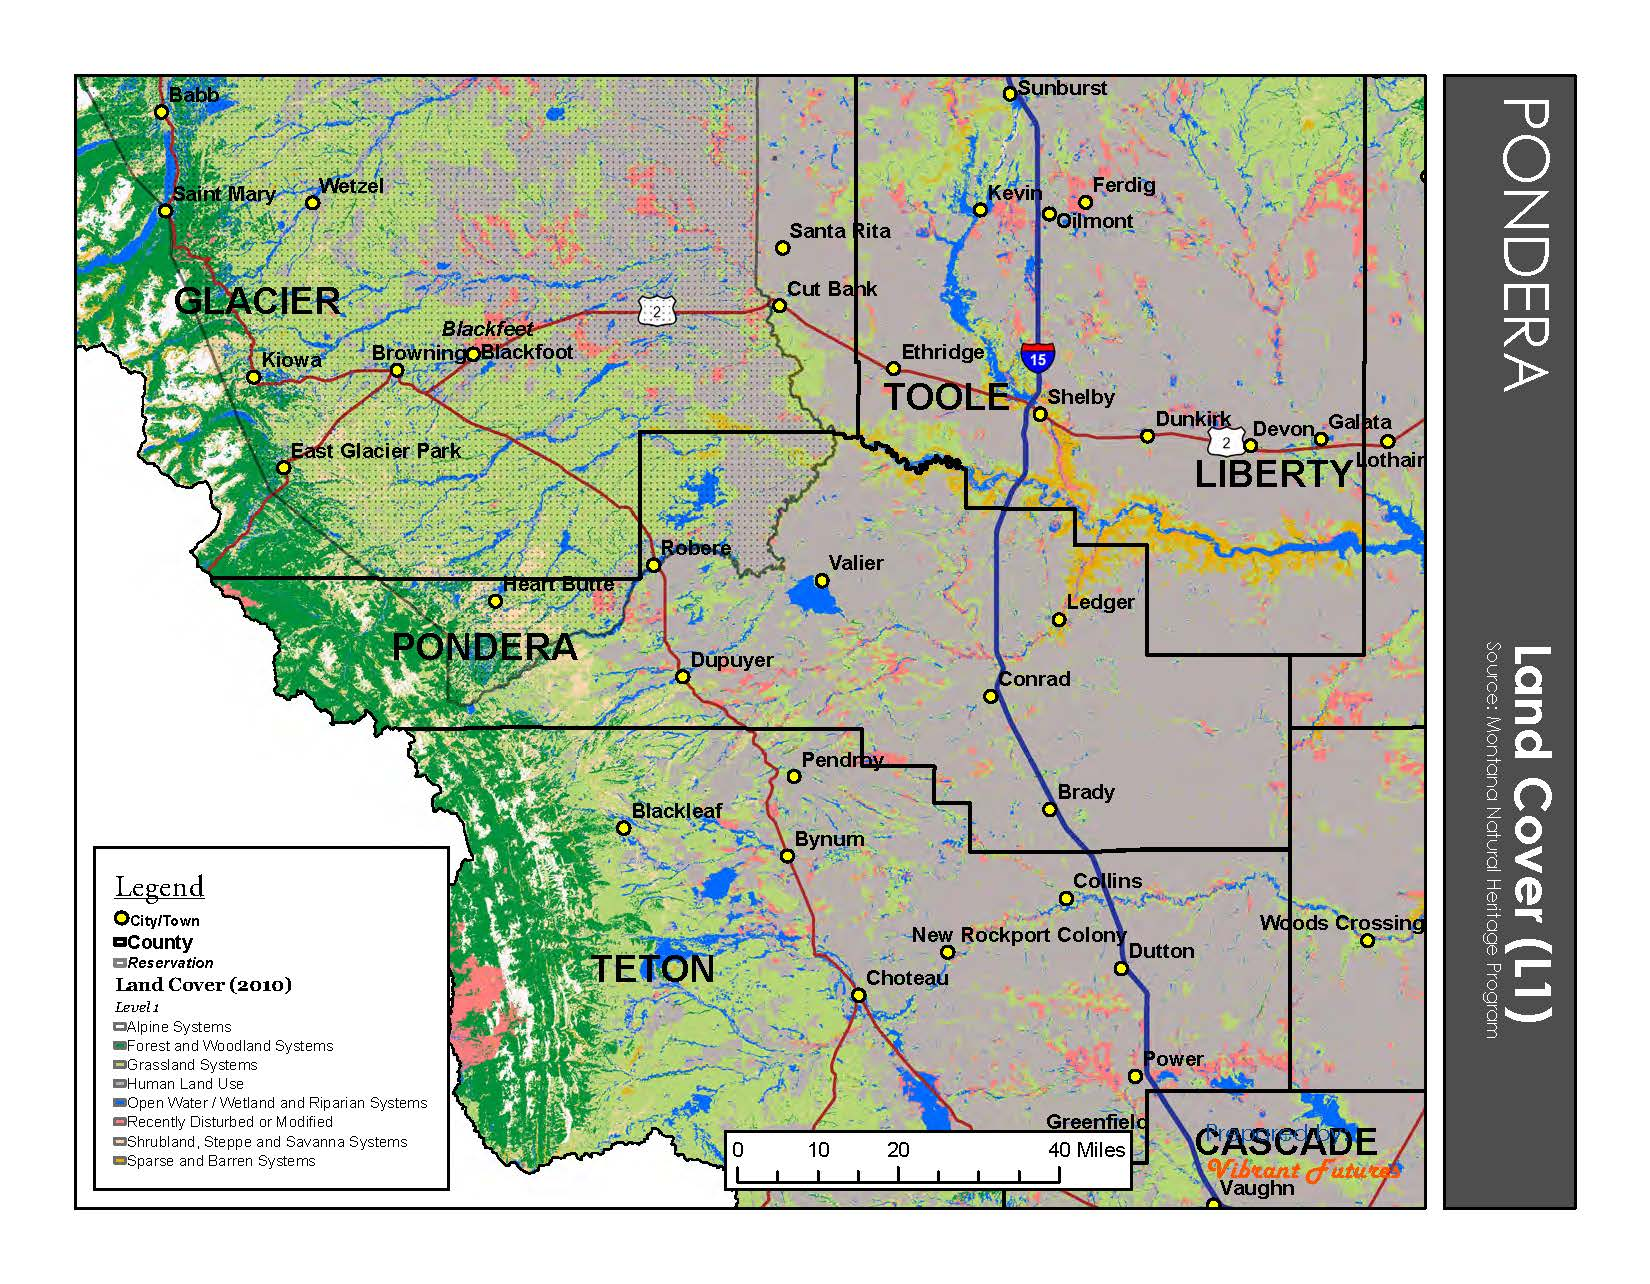 Land Cover Pondera County